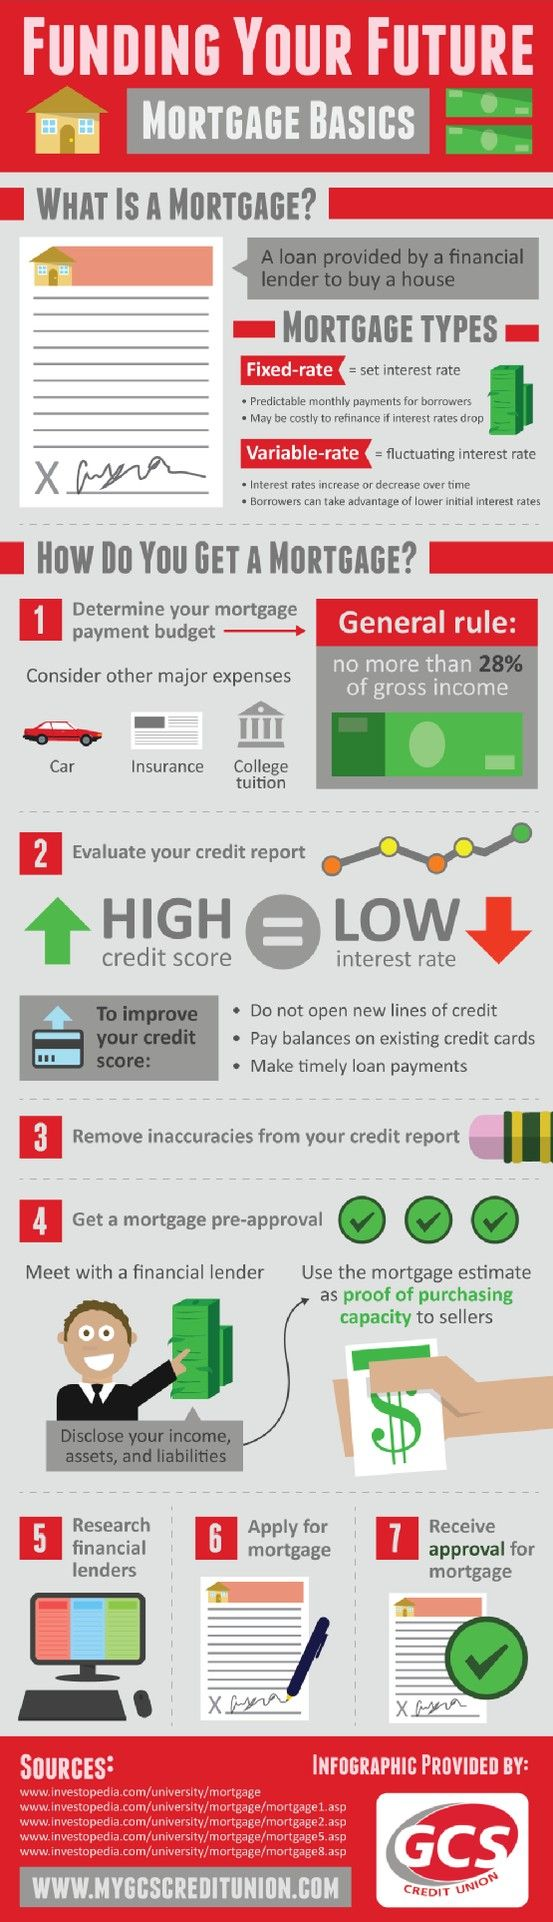 The first step in obtaining a mortgage loan is determining a mortgage payment budget. As a general rule, this budget shouldn't exceed more than 28% of a person's gross income. To learn more about preparing a mortgage loan application, take a look at this financial planning infographic.